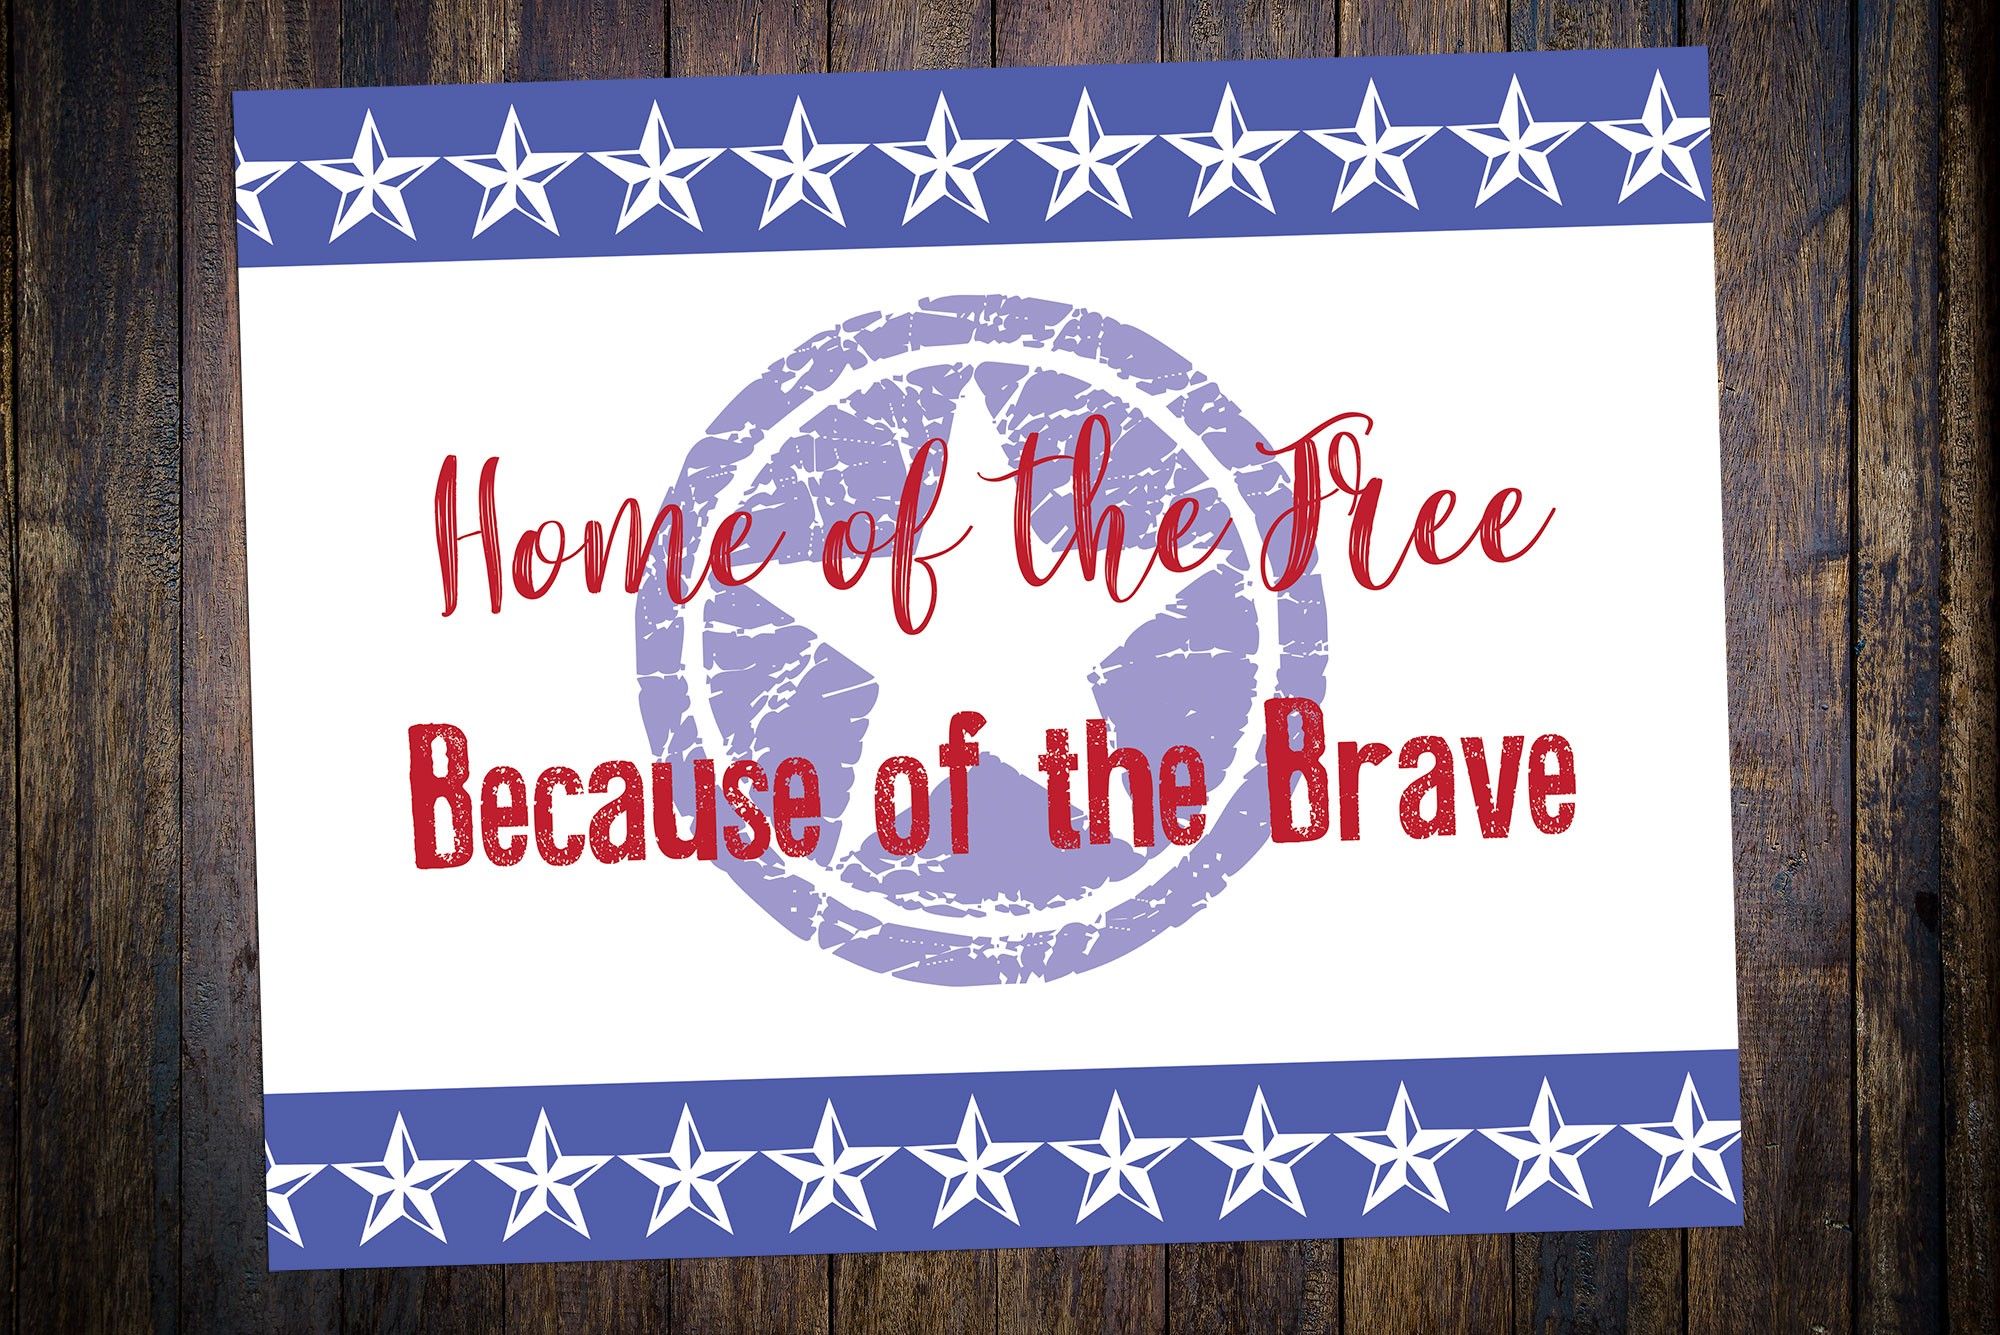 Free Patriotic Printable. Memorial Day Printable, Patriotic Prints, Home of the free because of the brave